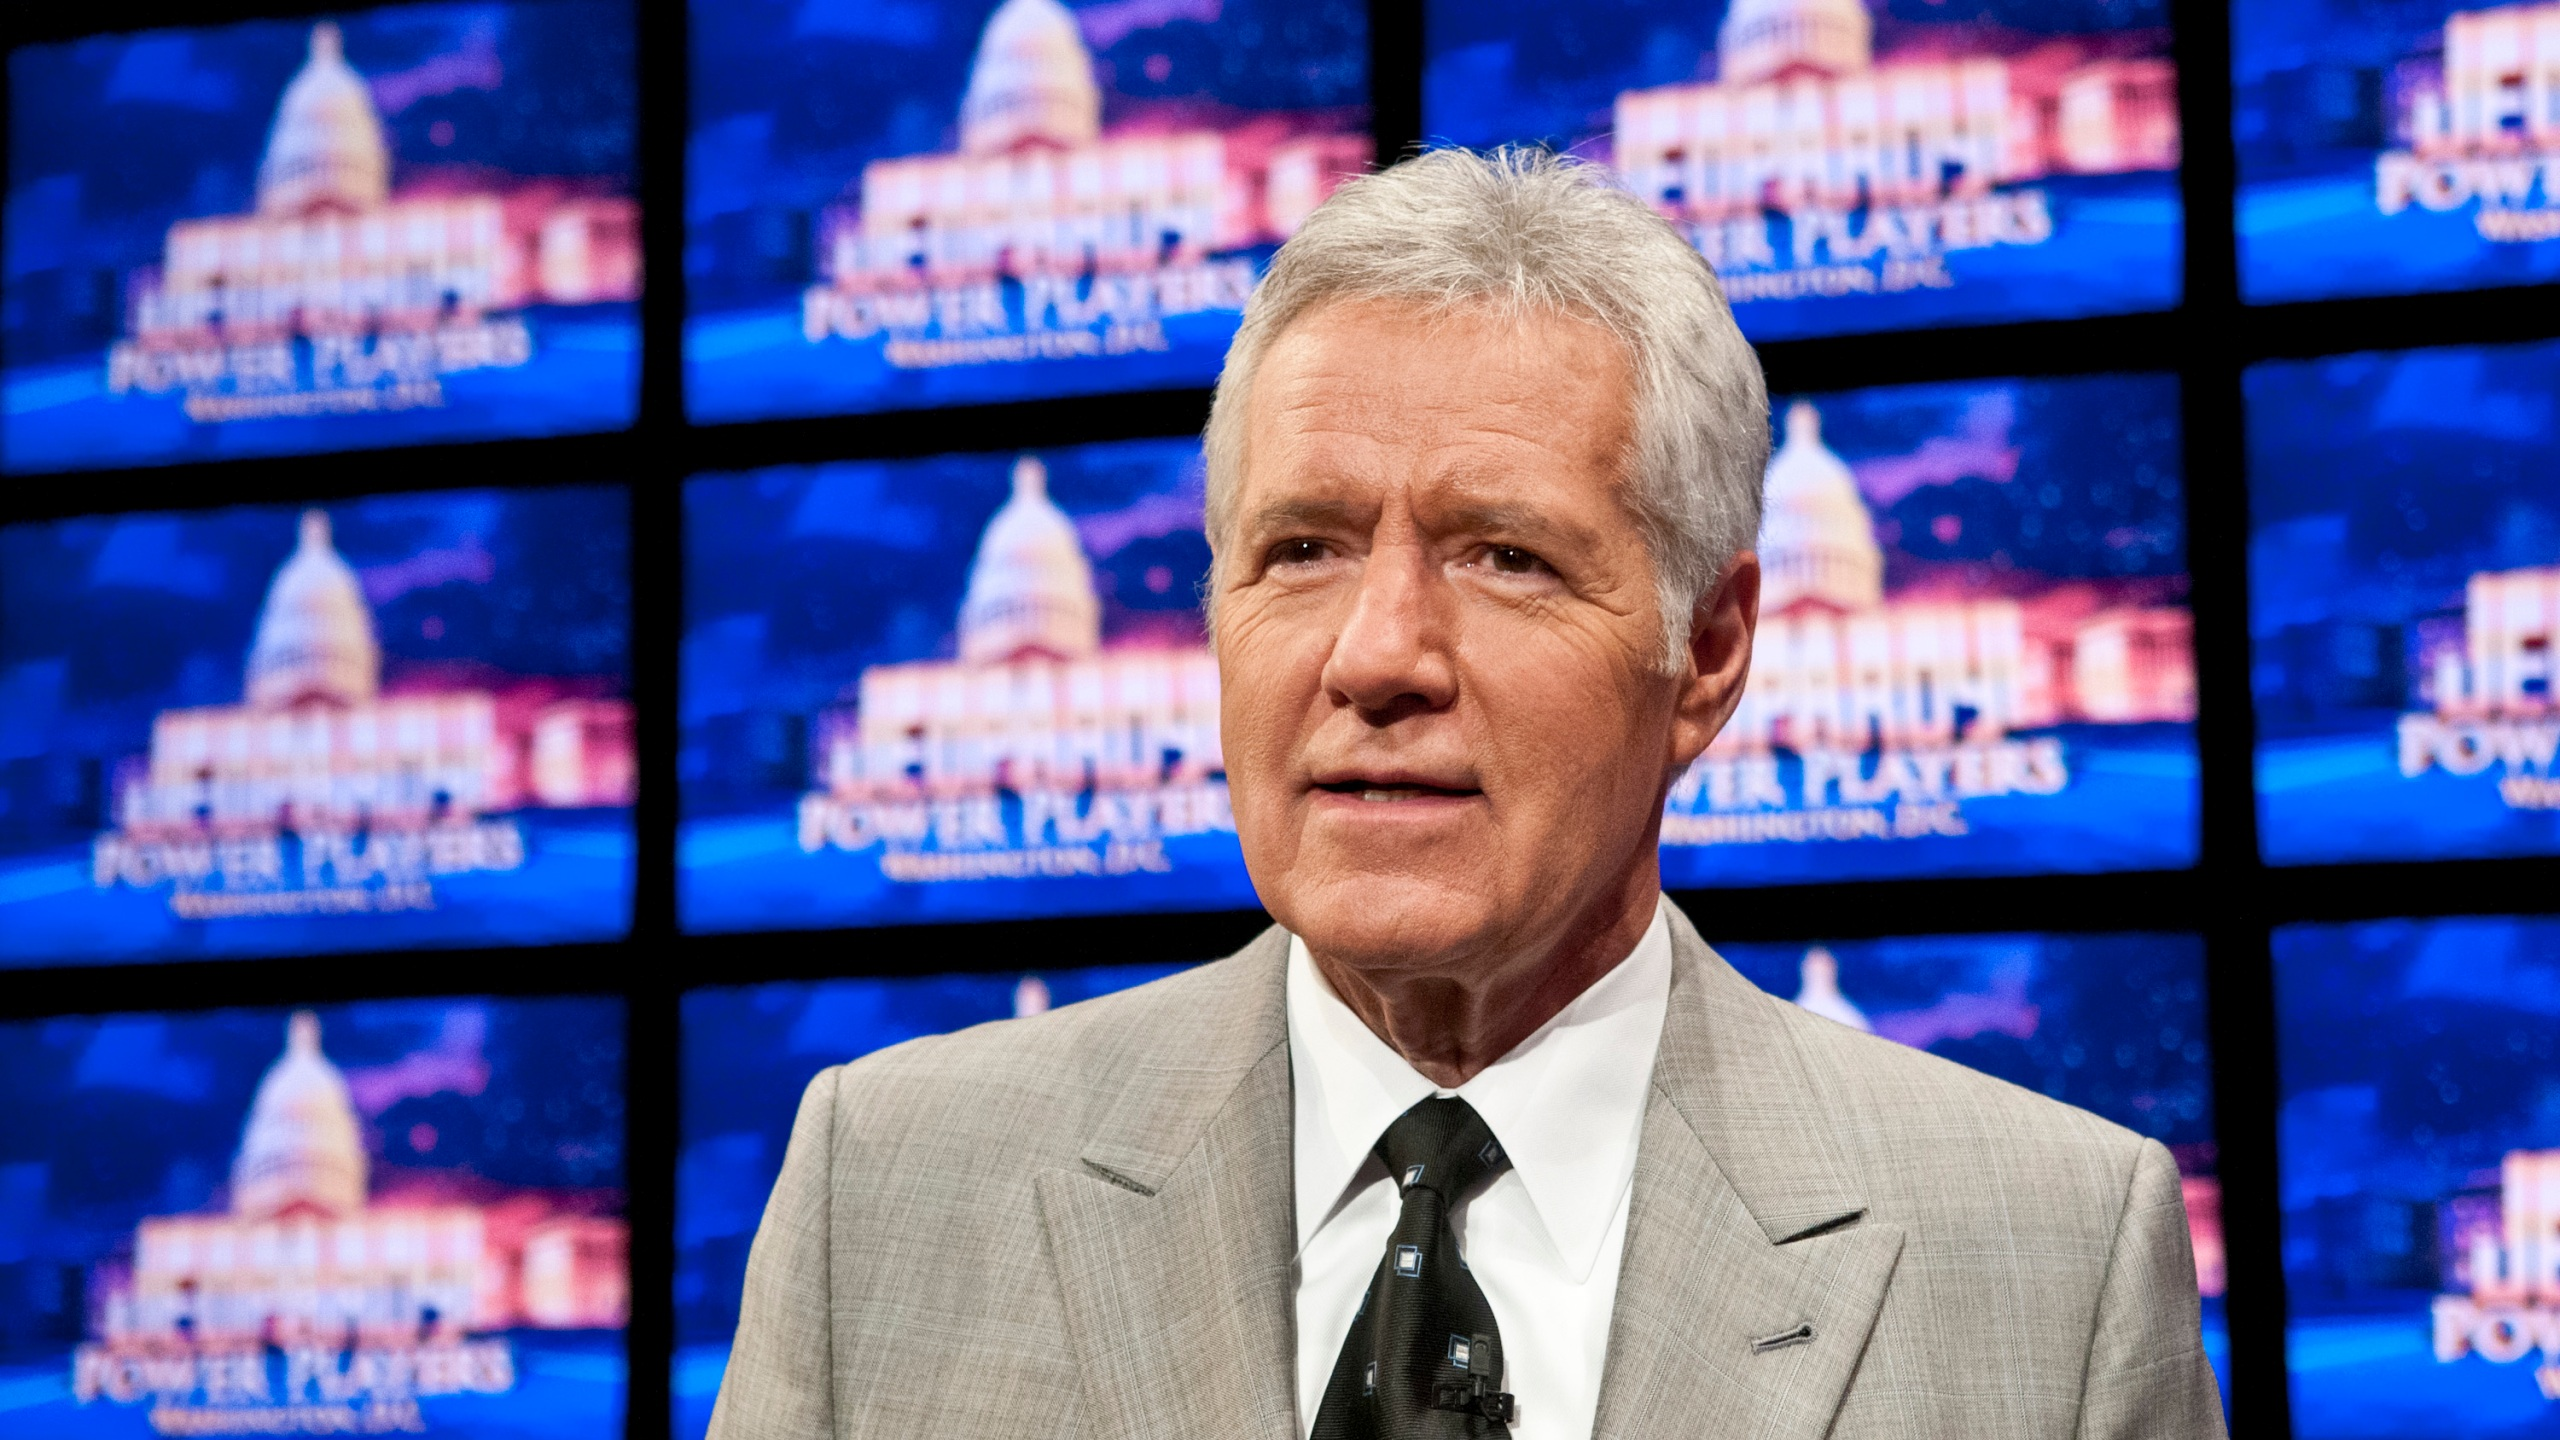 """Alex Trebek speaks during a rehearsal before a taping of """"Jeopardy!"""" at DAR Constitution Hall on April 21, 2012 in Washington, D.C. (Kris Connor/Getty Images)"""